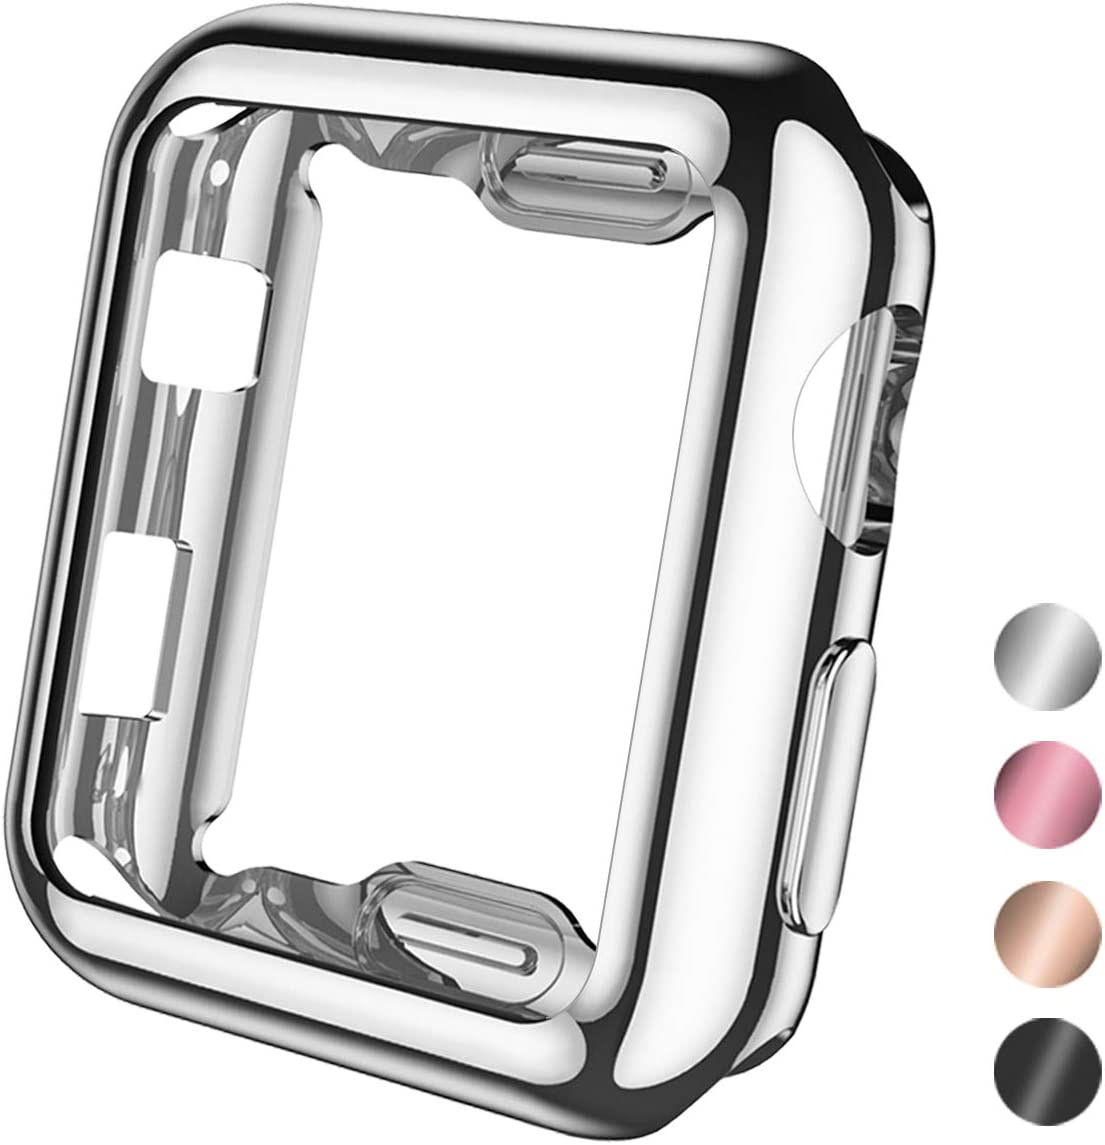 Henva Compatible with Apple Watch Case 38mm Series 3, Series 2, Series 1, Soft Overall Protective Case Ultra-Thin TPU Cover Compatible for iWatch 38mm Series 3 2 1, Silver